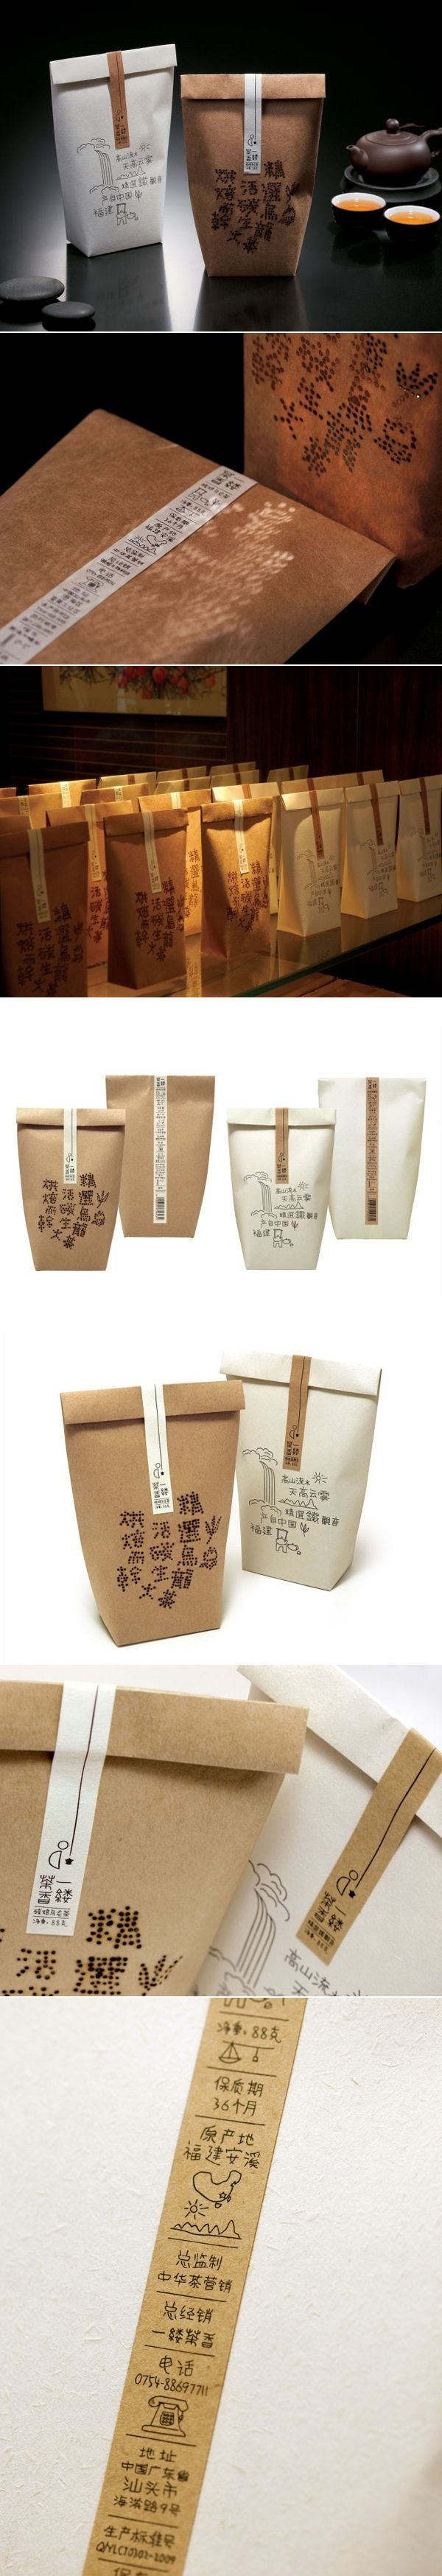 Chinese packaging design – A wisp of tea